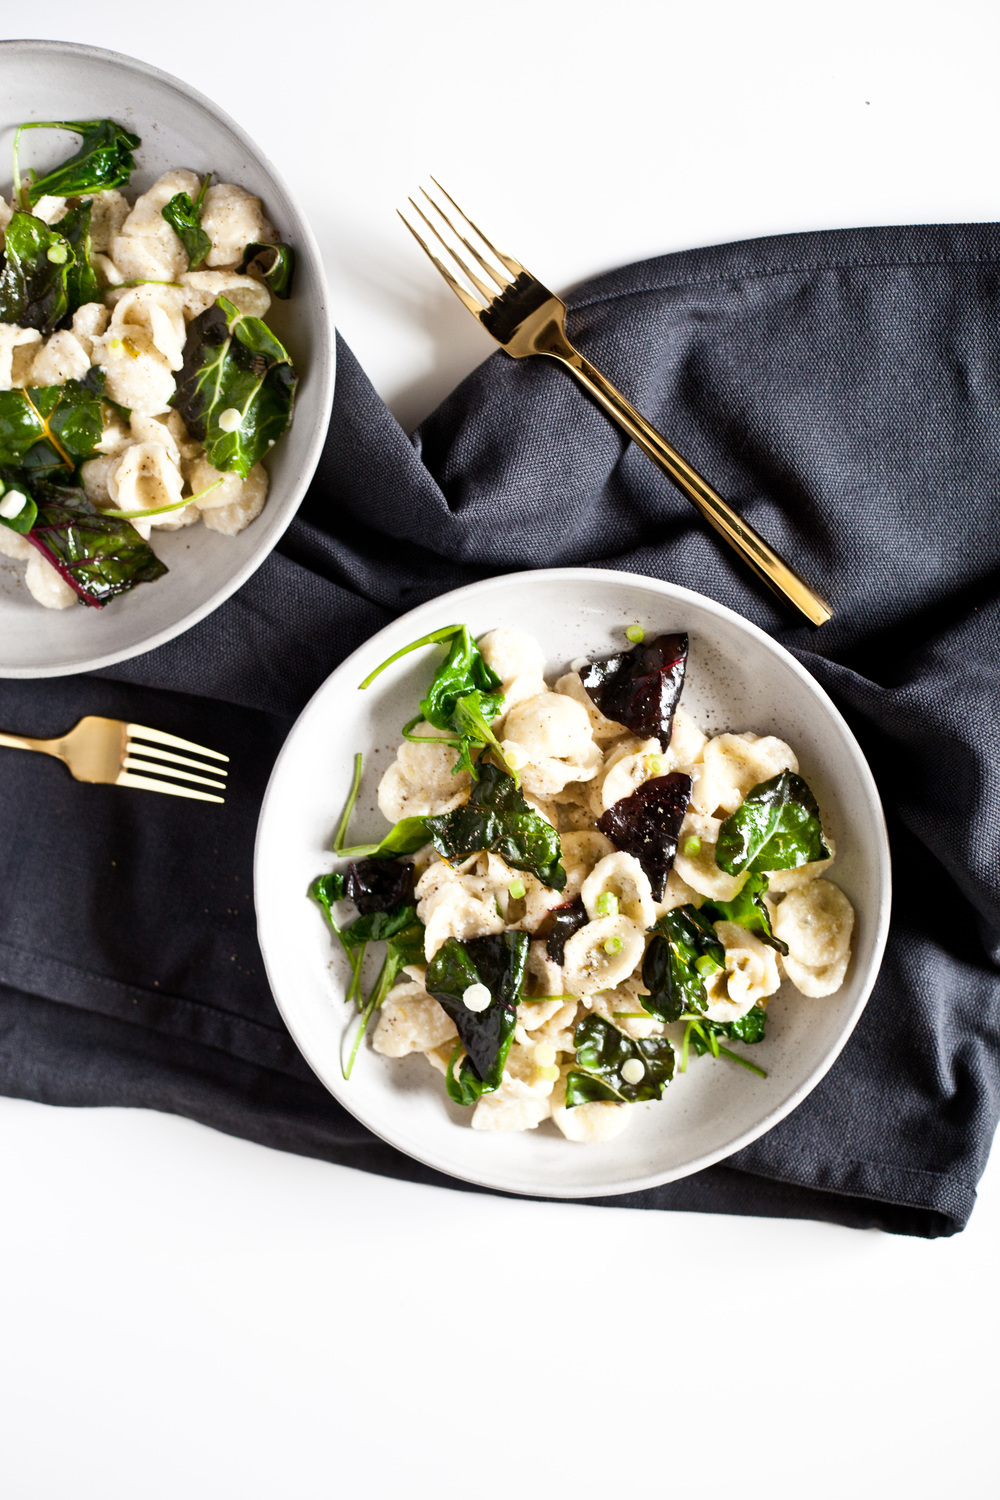 Winter Greens with Orecchiette and Wine Scallion Sauce